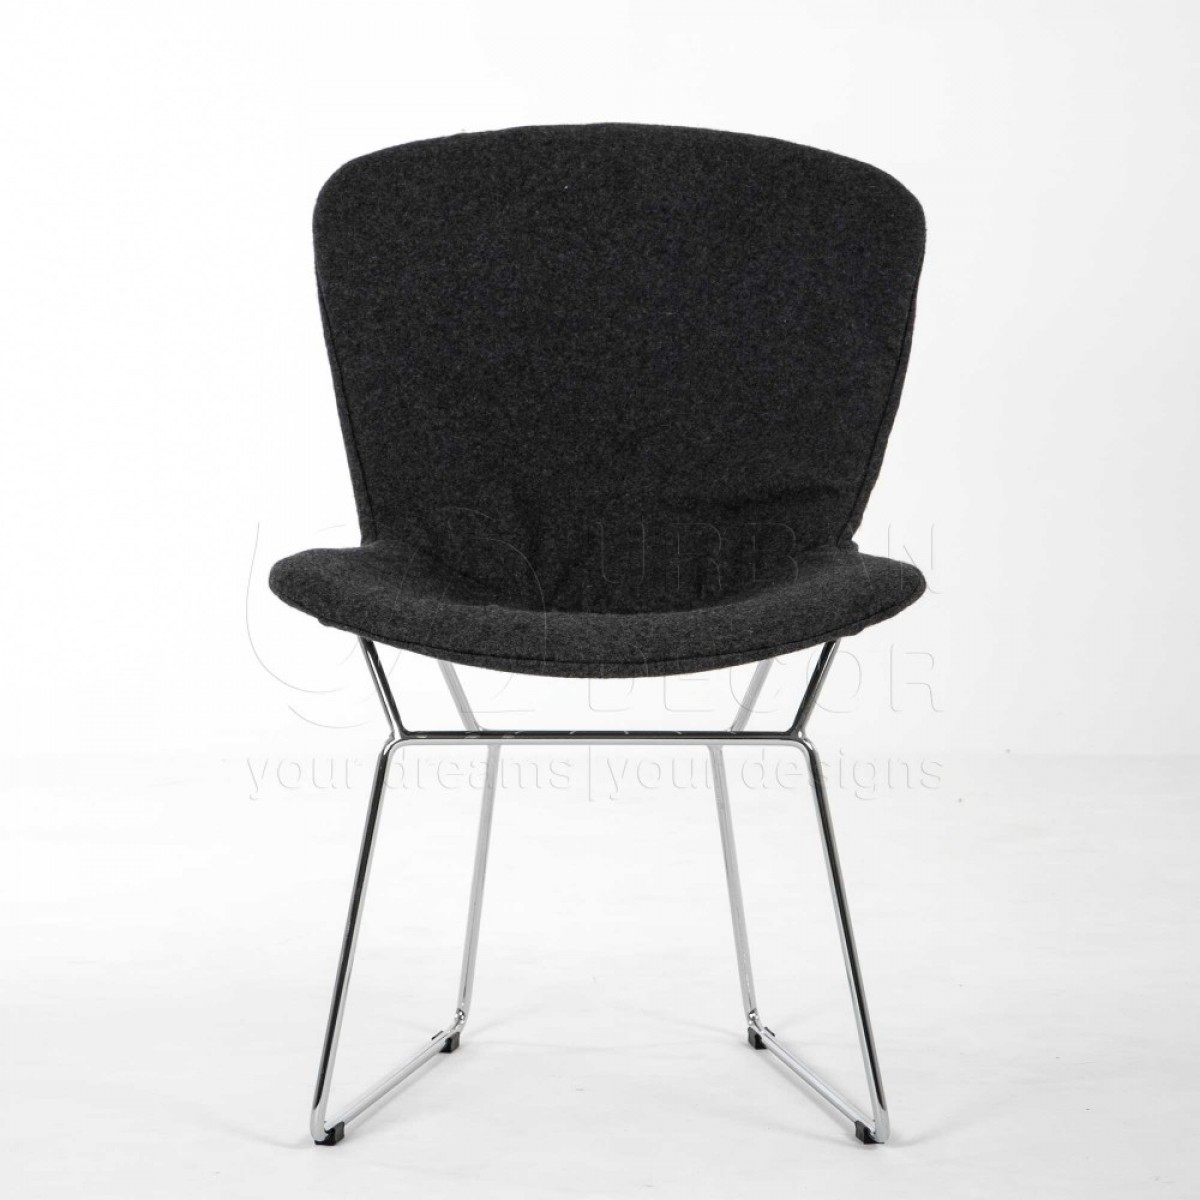 Cloth Covered Office Chairs Wire Mesh Chair